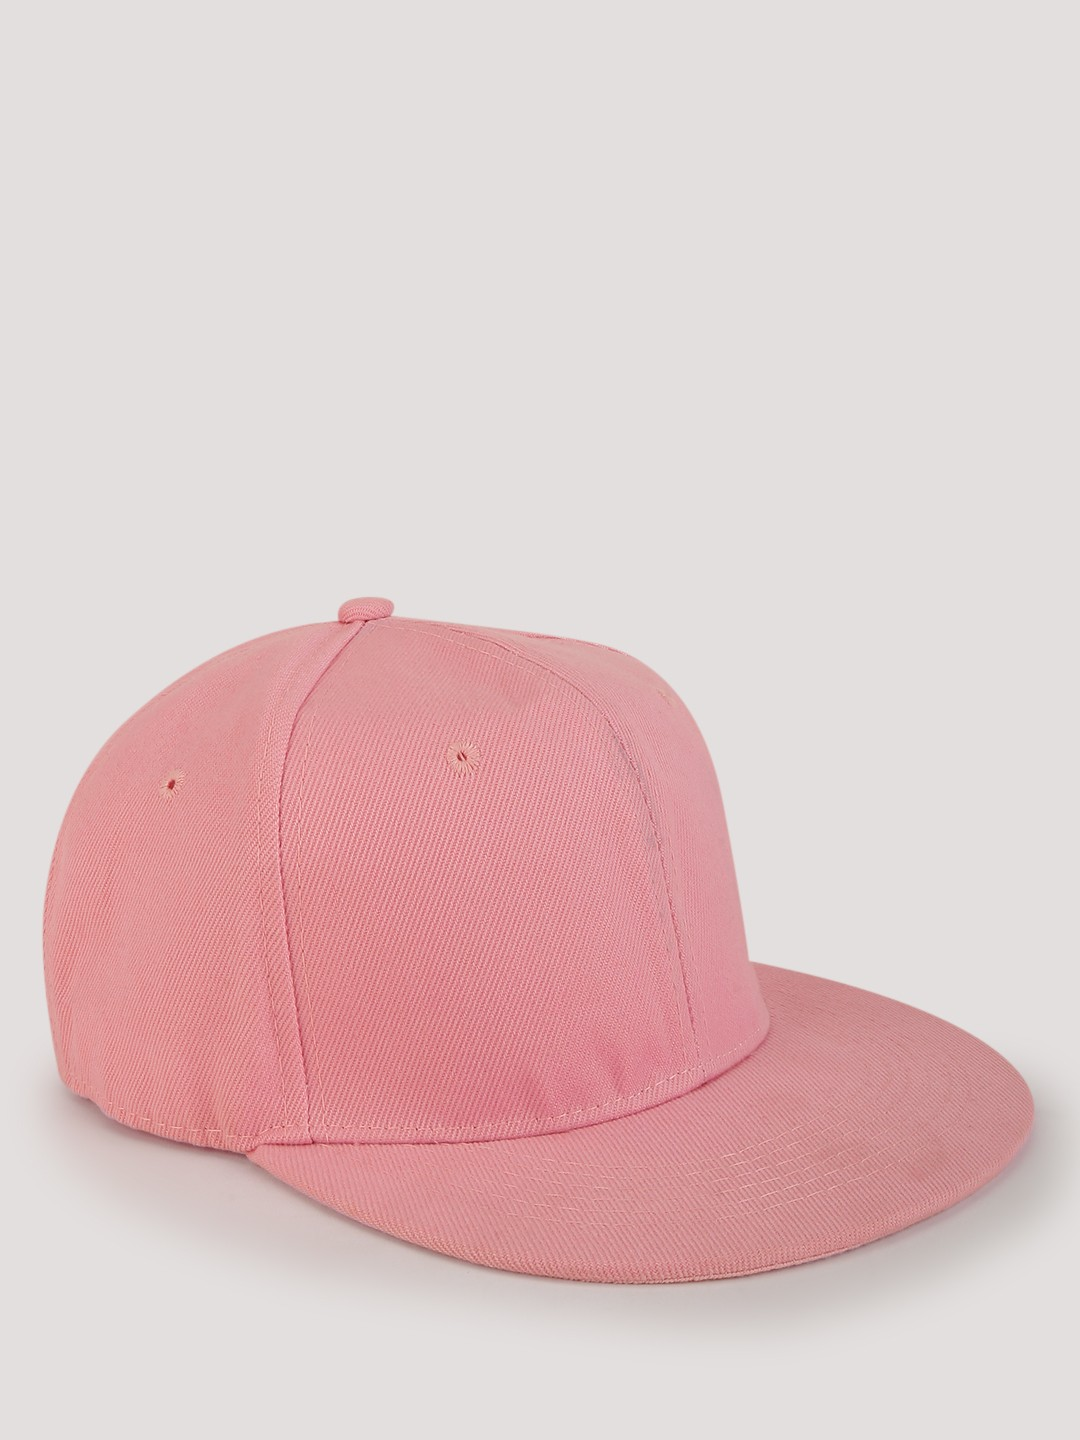 buy style five panel cap for s pink